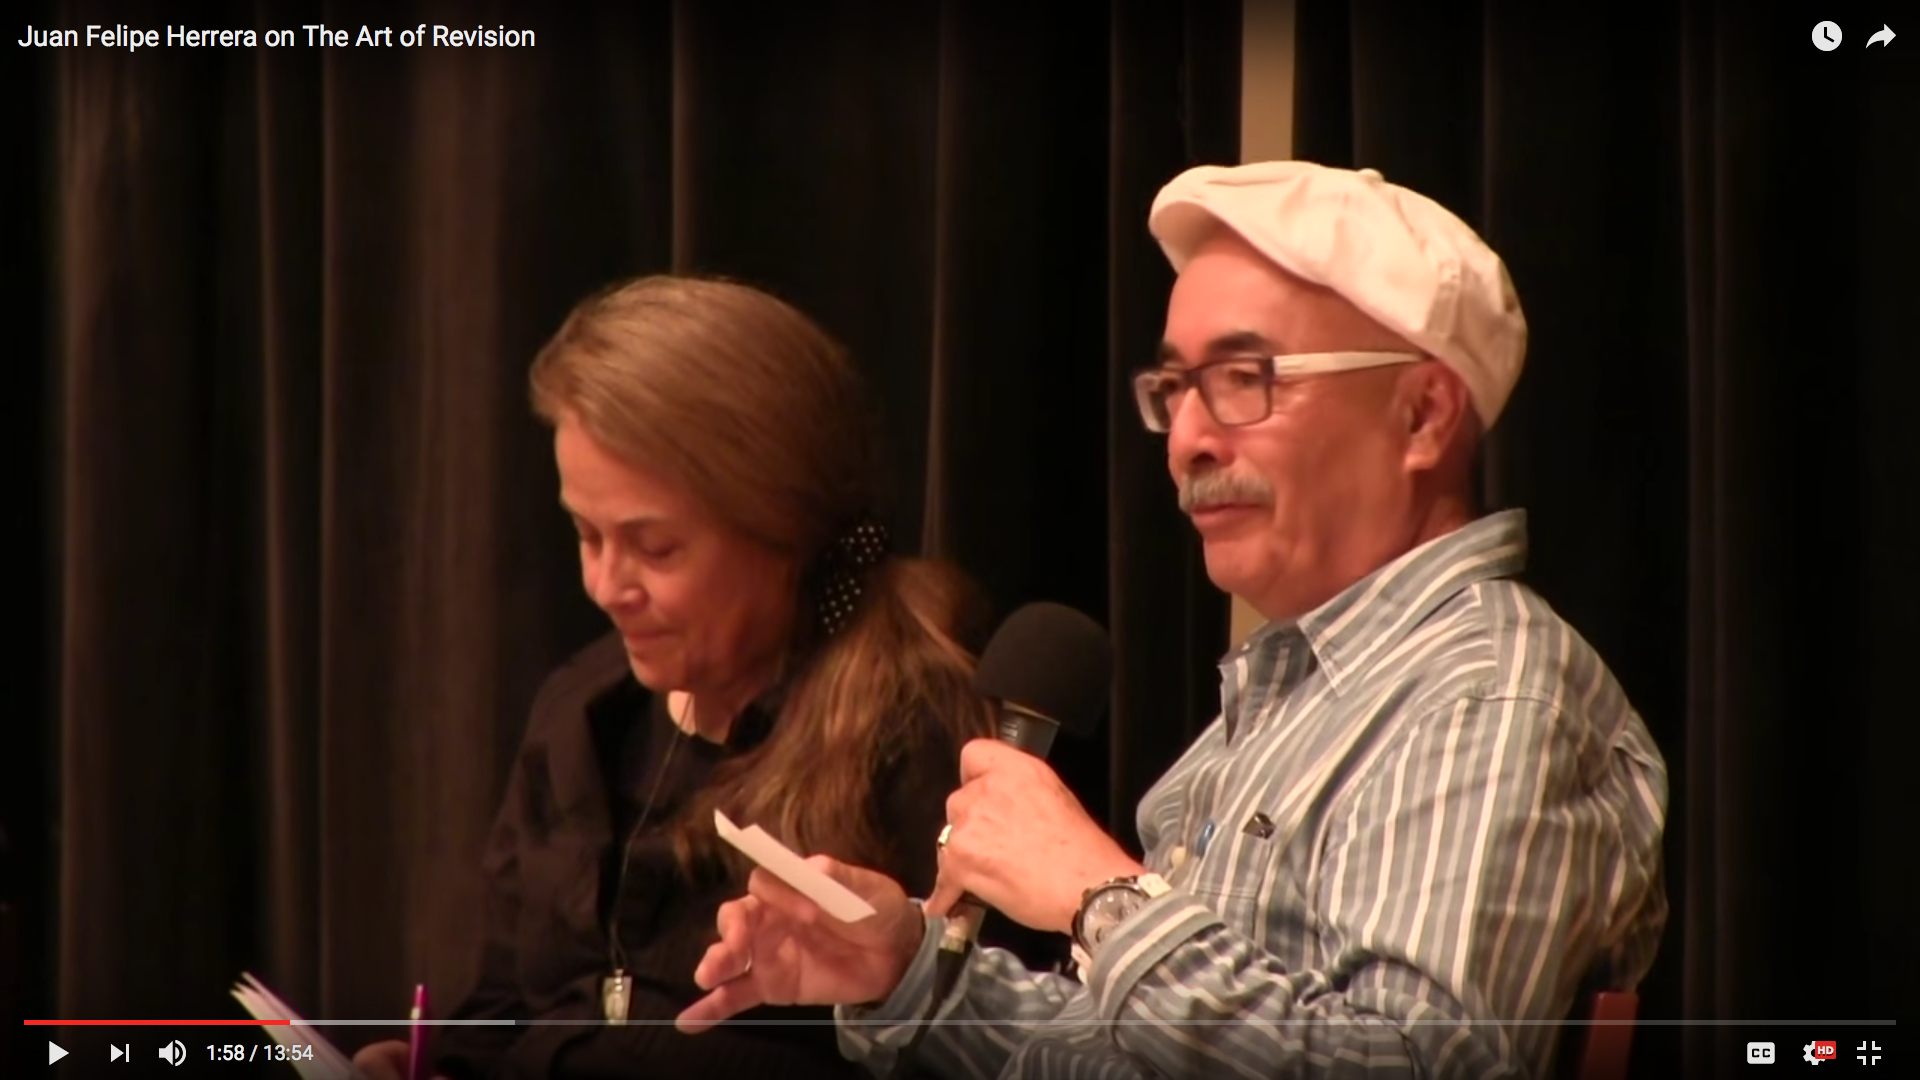 Juan Felipe Herrera on the Art of Revision